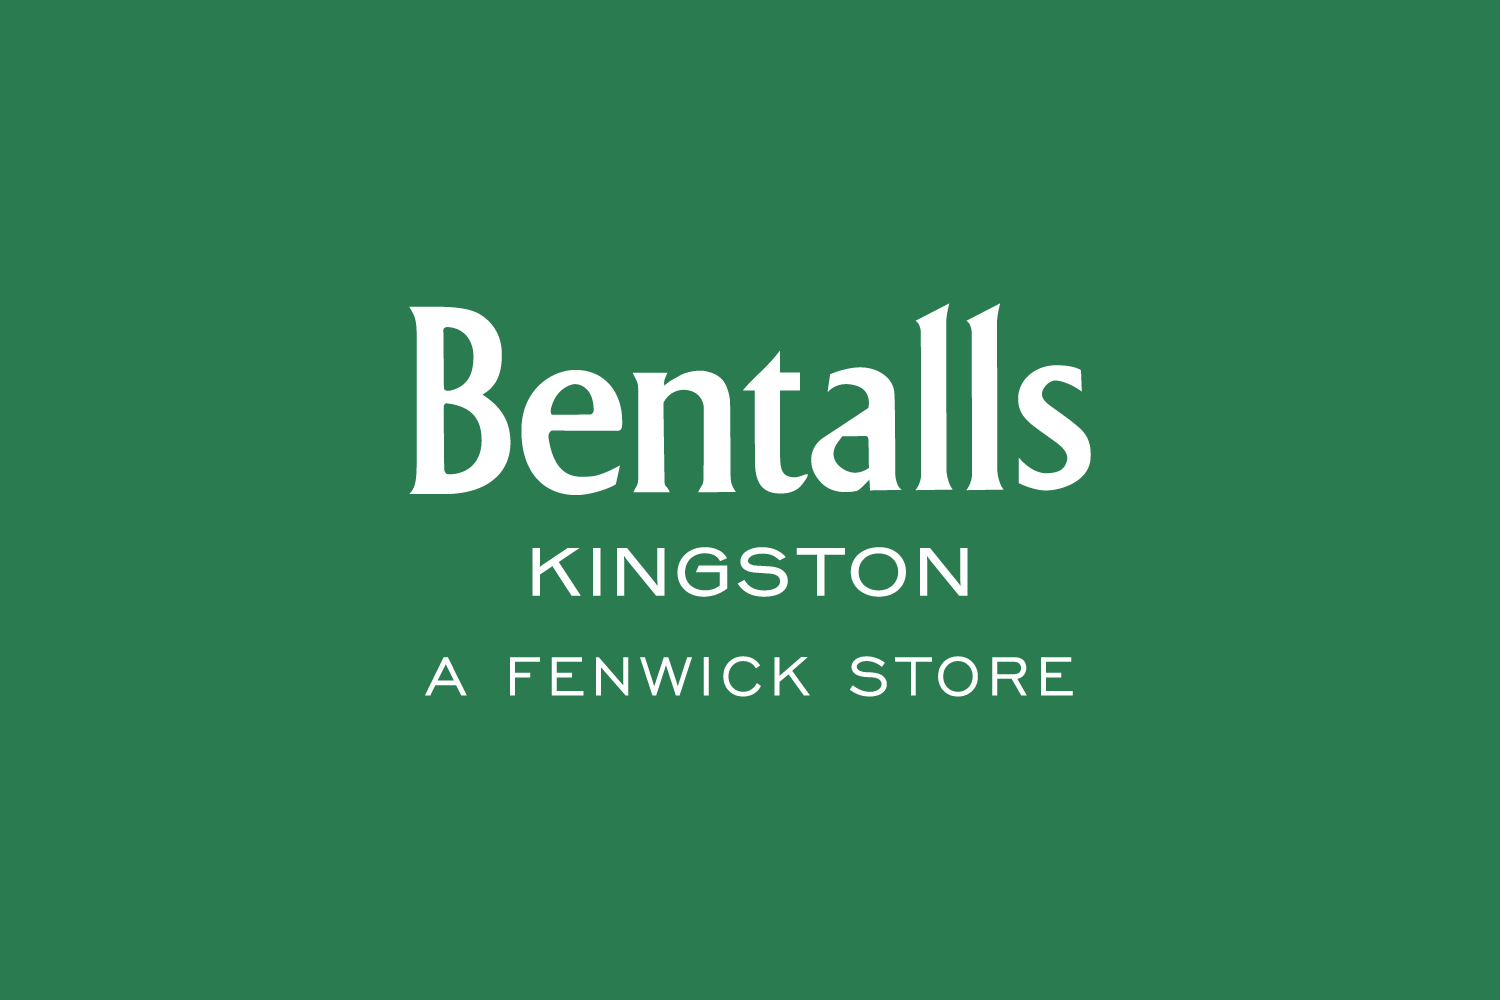 Get up to 70% off in this Warehouse Clearance Sale from Bentalls Kingston, including discounts on international designer fashion brands! Click Follow to be notified of any changes, further reductions or cancellations. Follow @ChicmiApp on Instagram for updates.